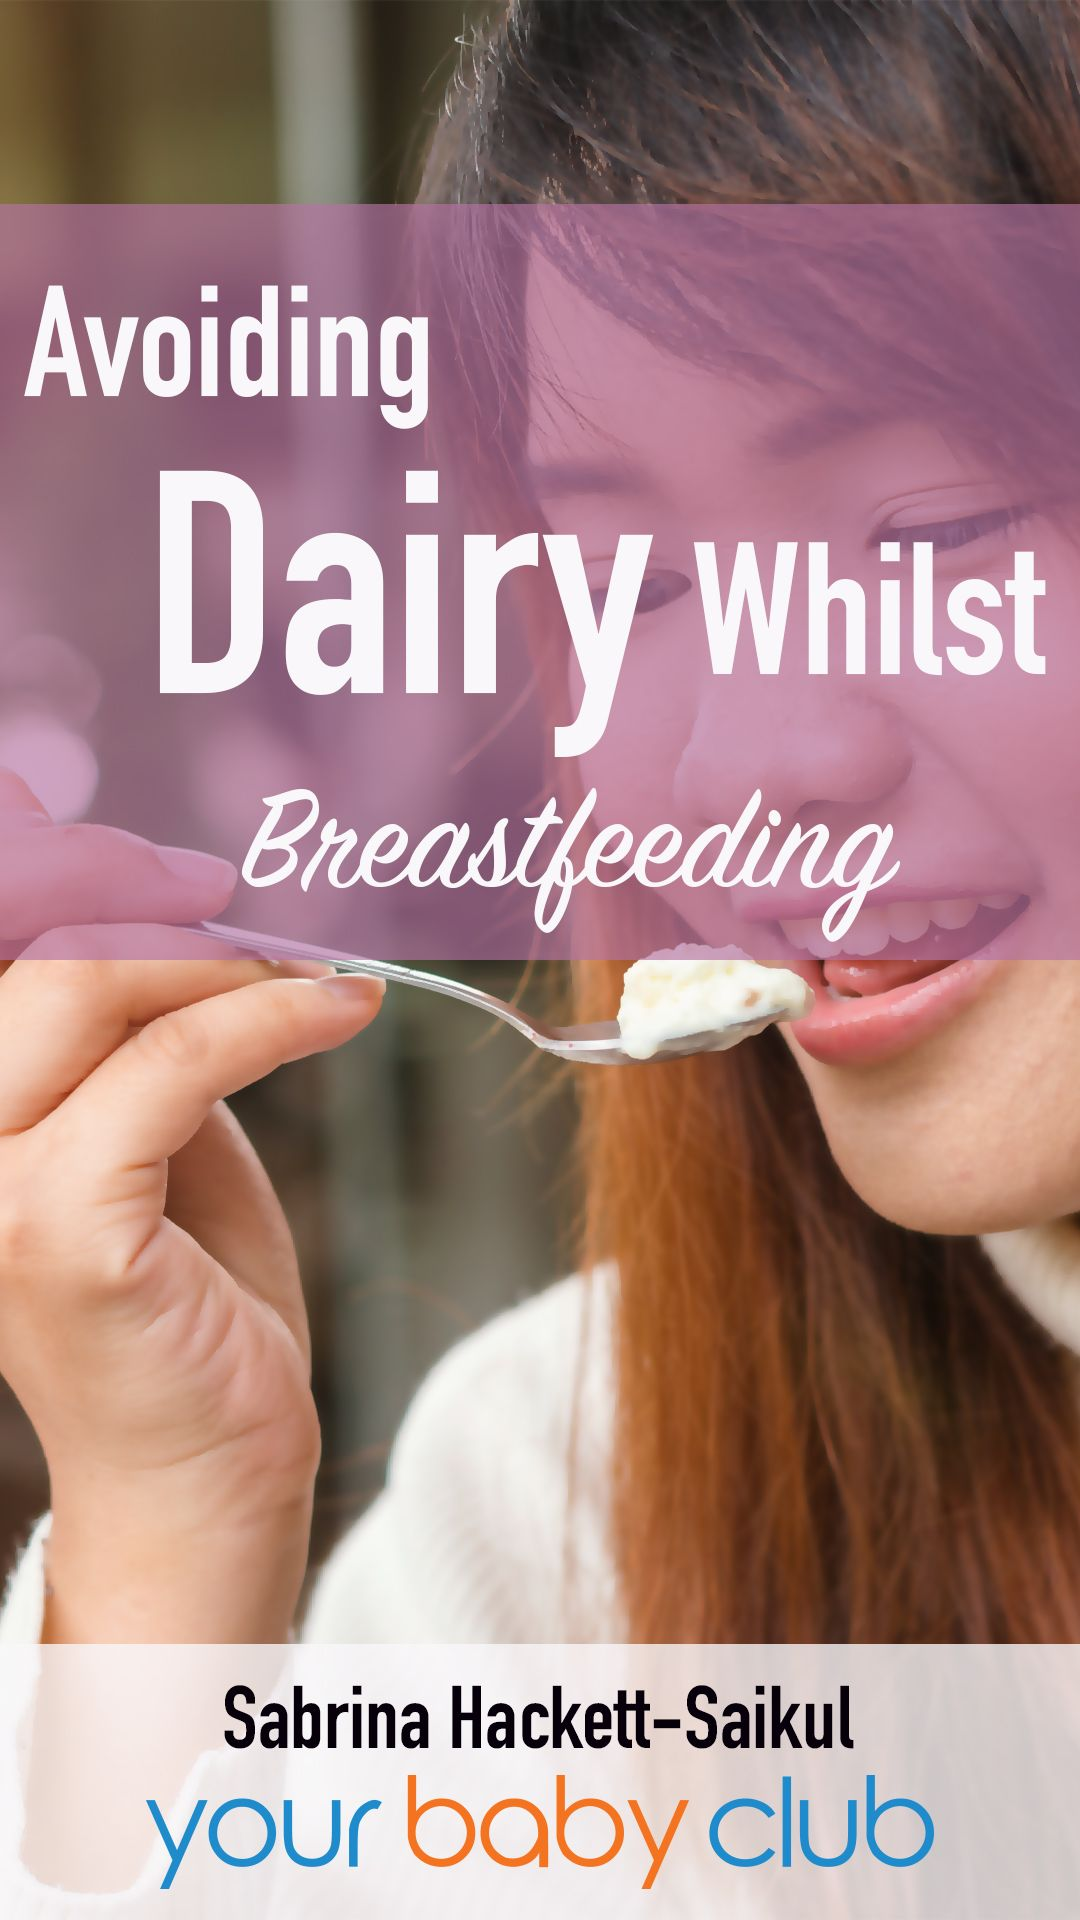 Why I Adopted a DairyFree Diet Whilst Breastfeeding